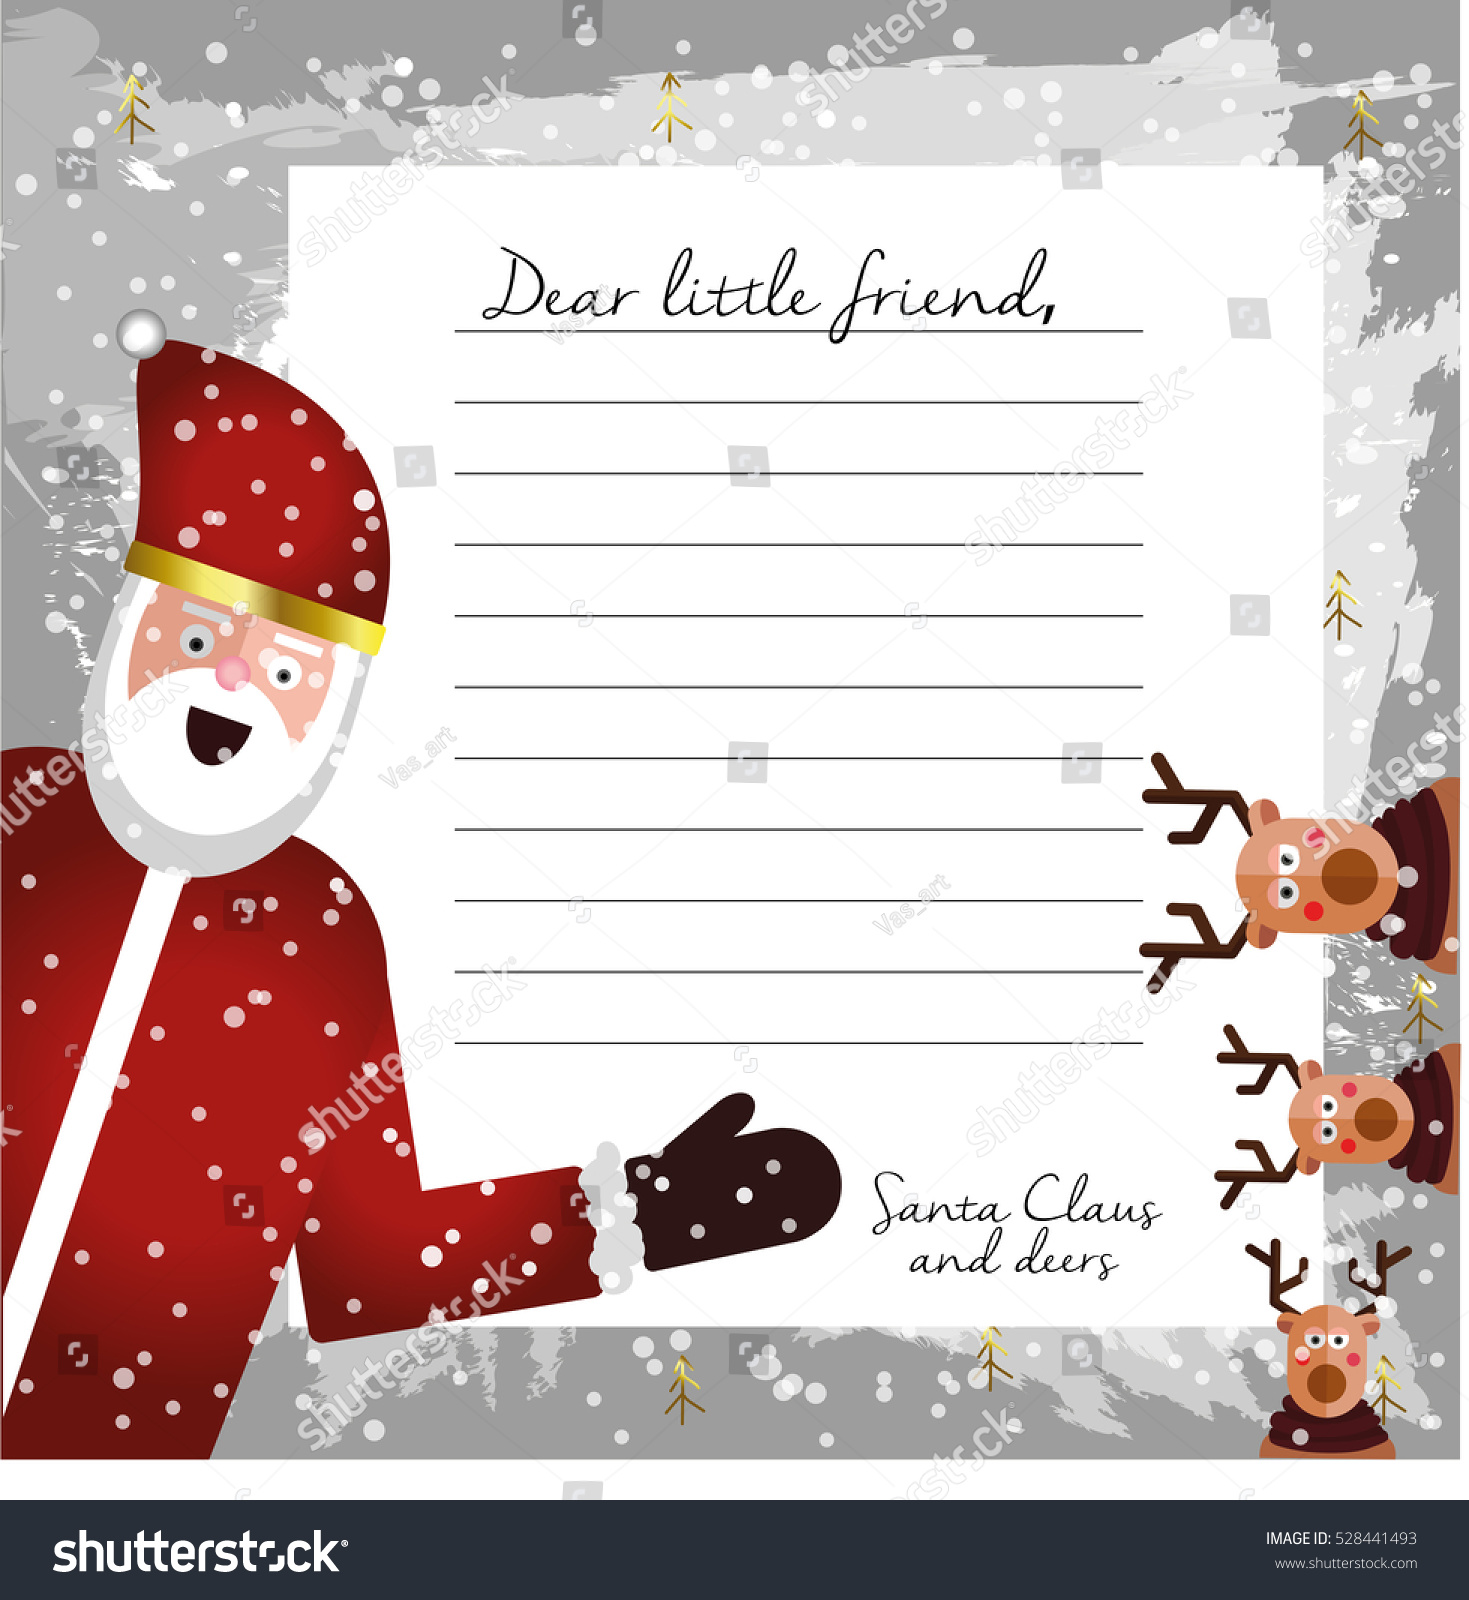 Cute letter santa claus design template stock vector 528441493 cute letter santa claus design template stock vector 528441493 shutterstock spiritdancerdesigns Image collections